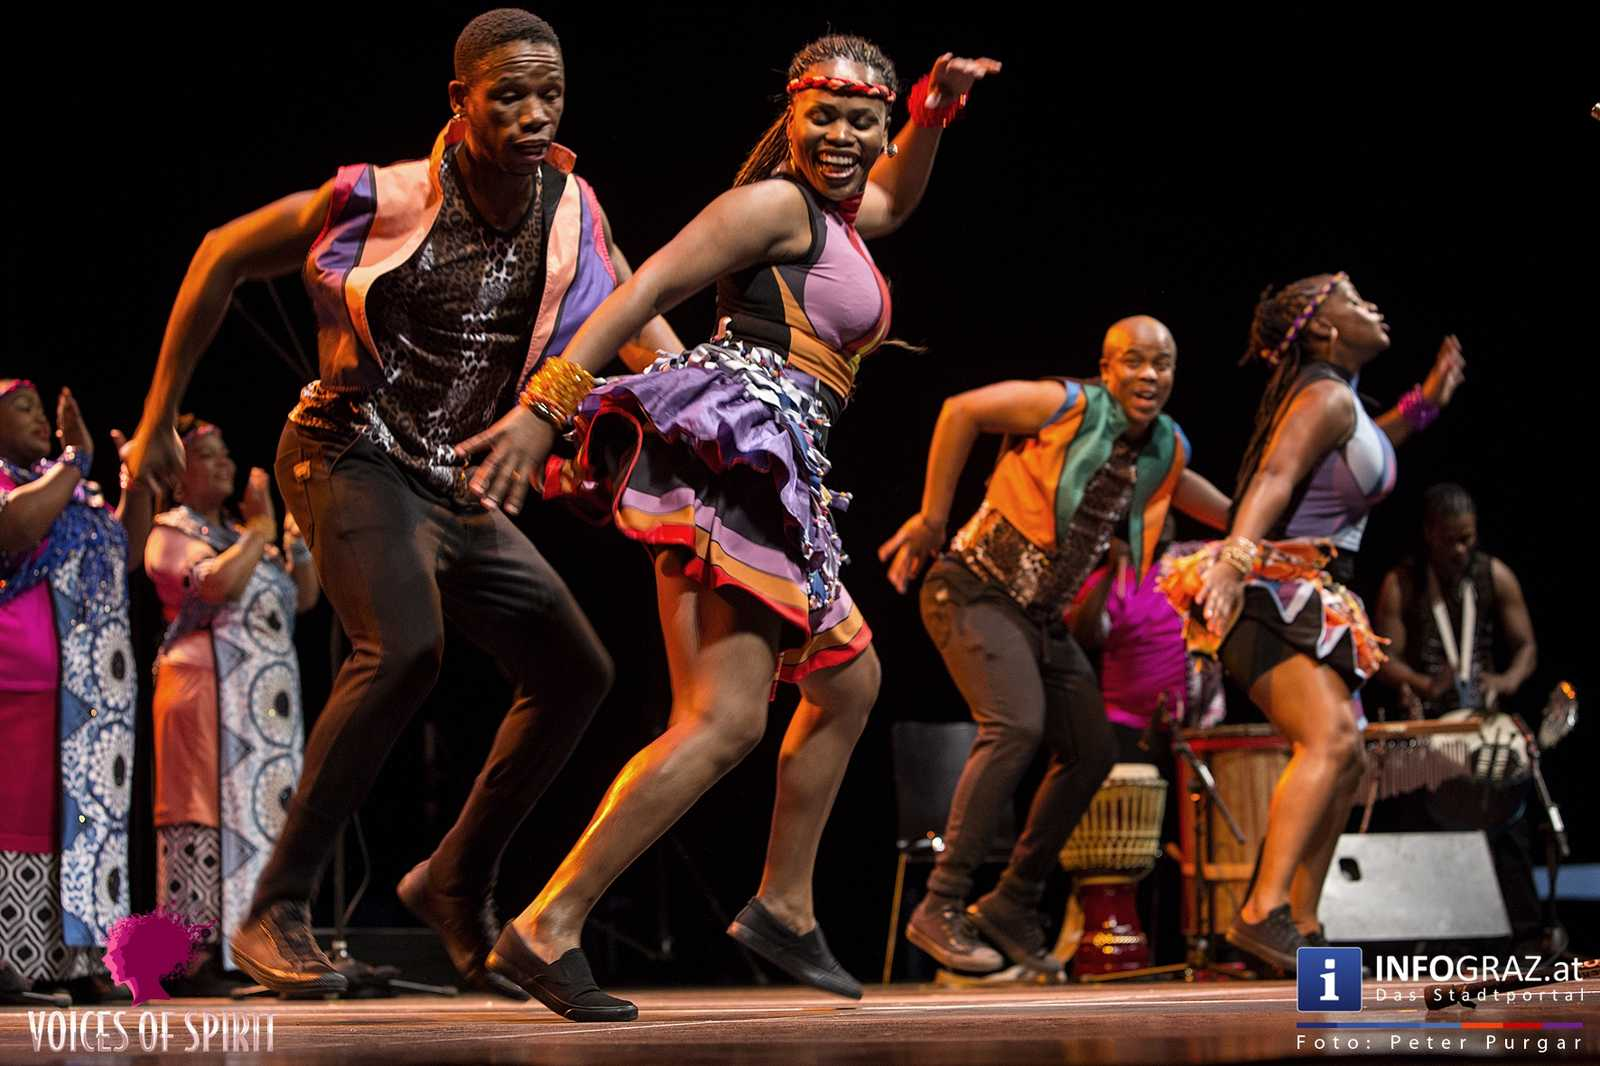 soweto gospel choir internationales chorfestival statdthalle graz voices of spirit eroeffnung festivals 2016 089